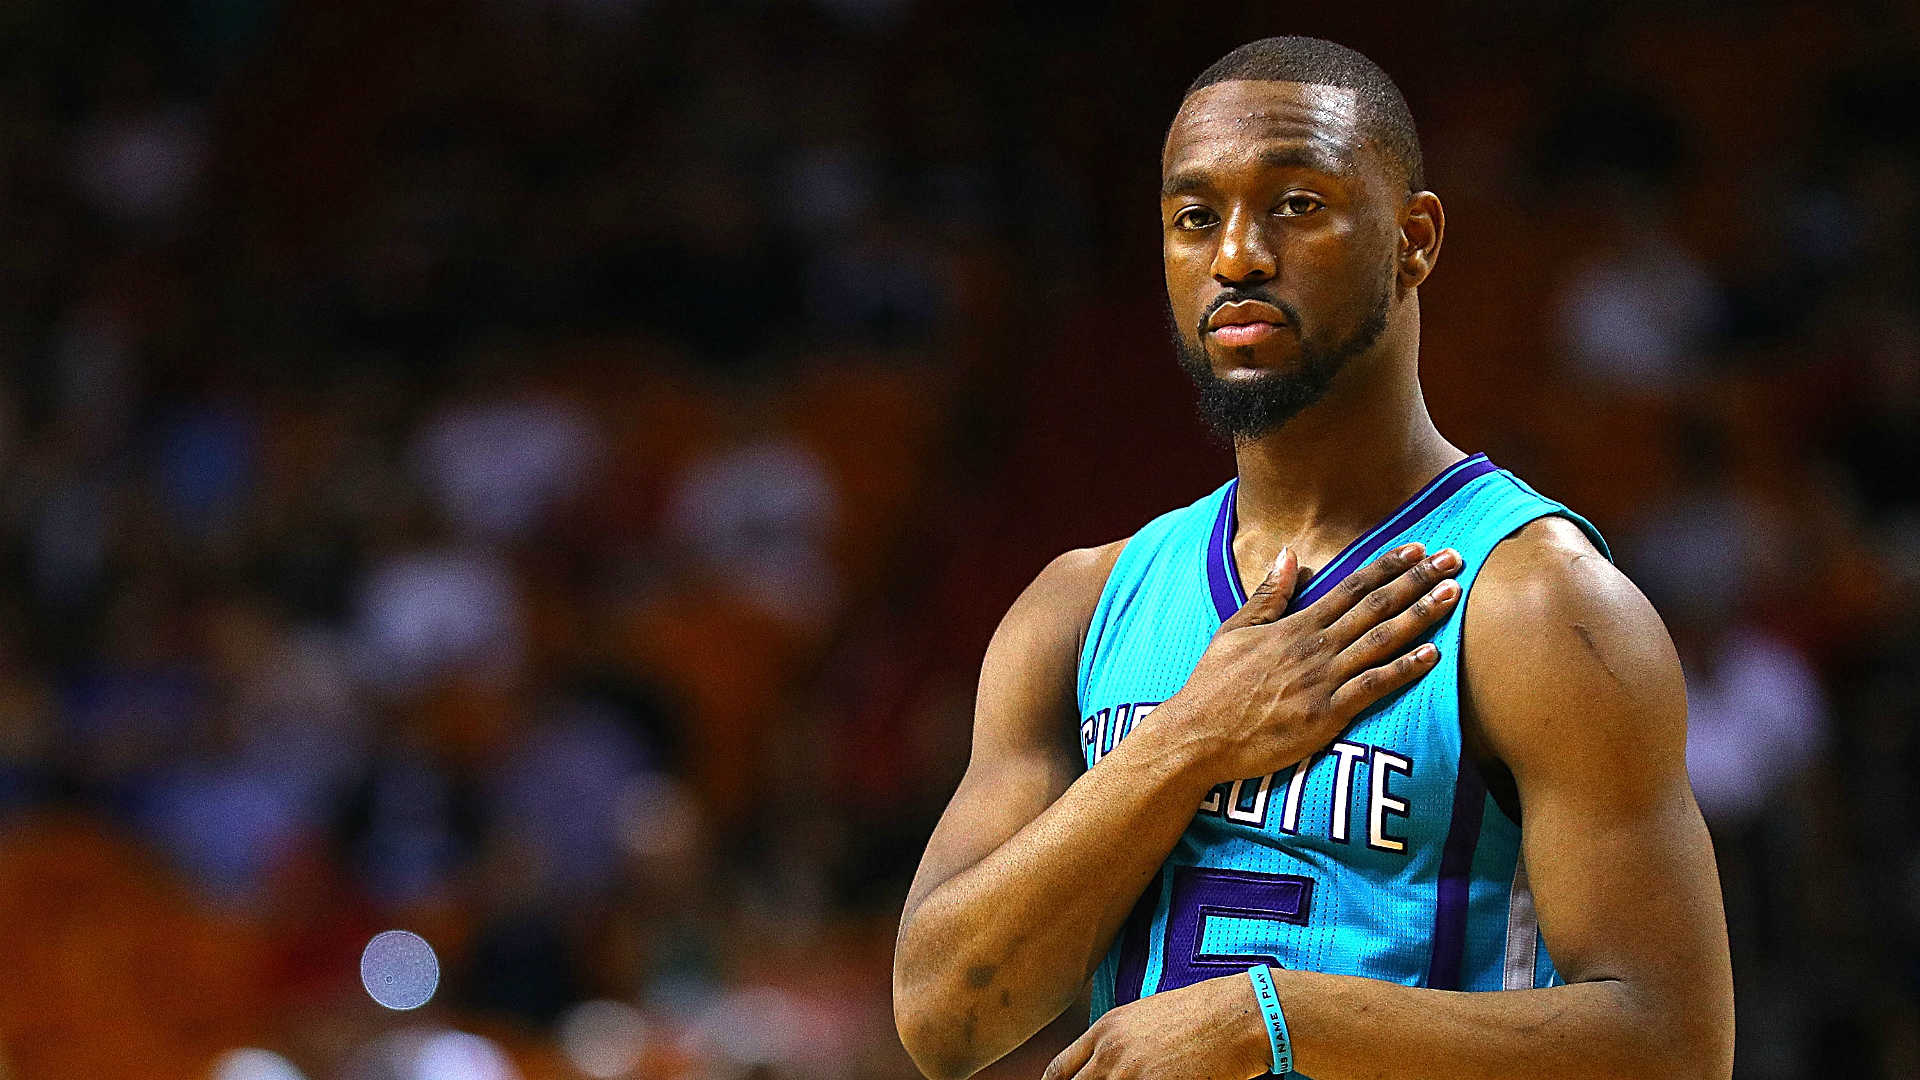 Heat loses crucial game to Hornets as Wade misses late shot